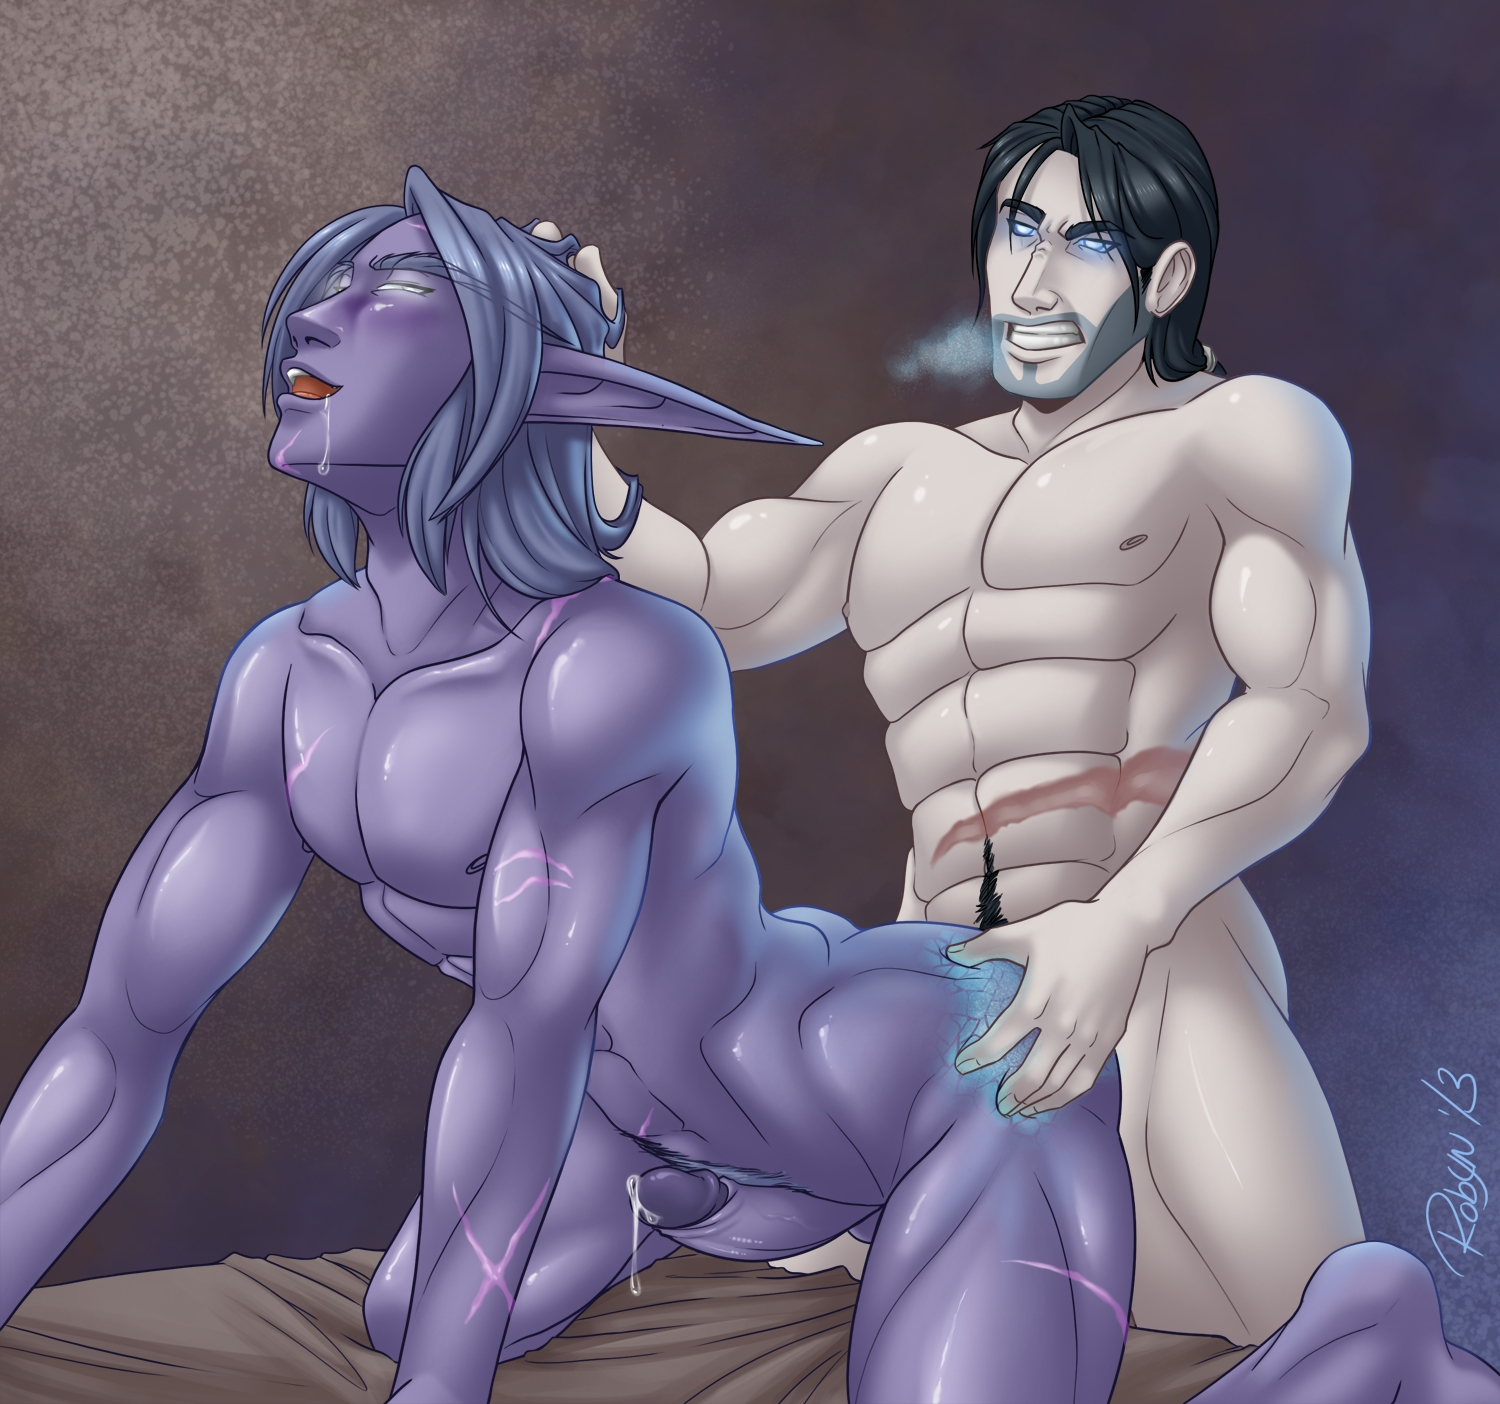 Warcraft gay hentai hentai download